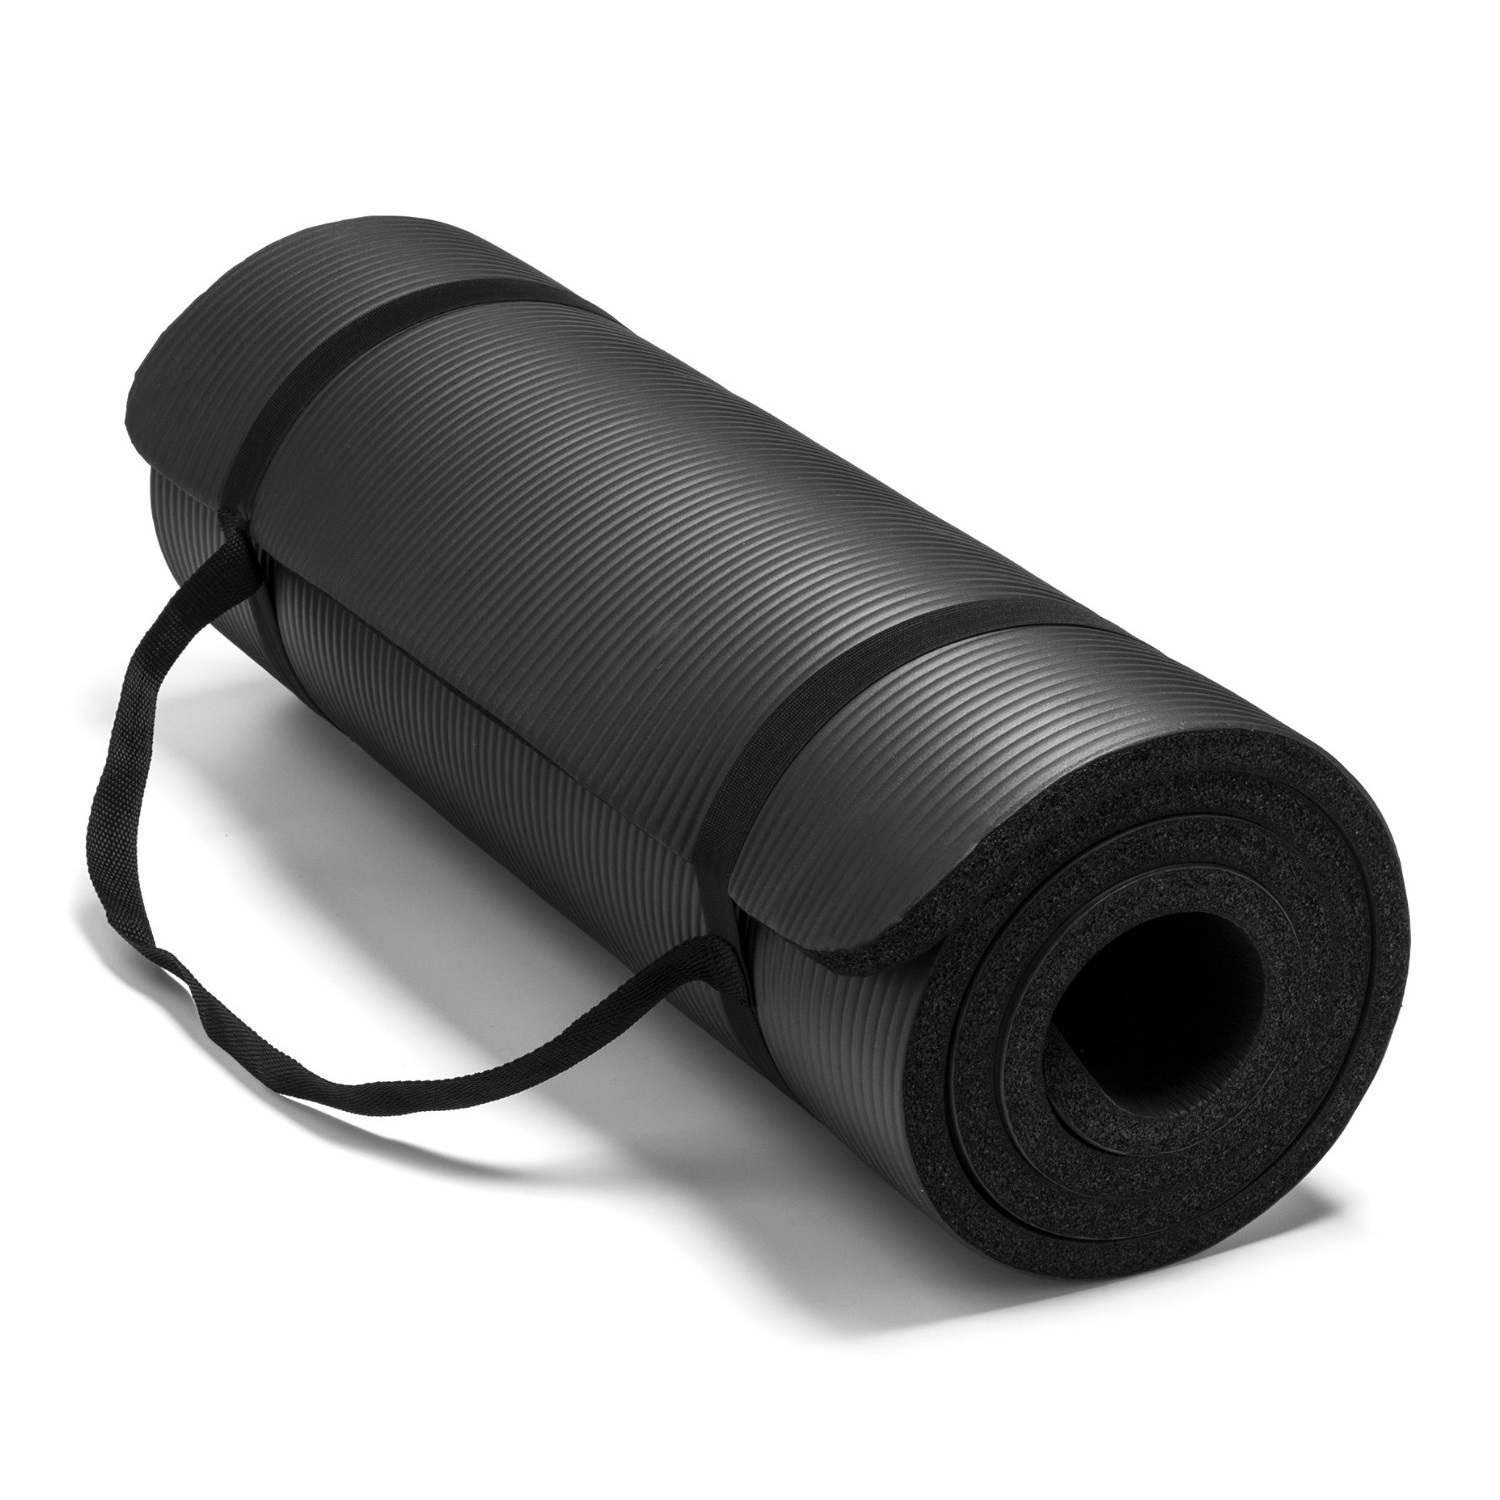 spoga premium 1/2 inch high density yoga mat with carrying strap black